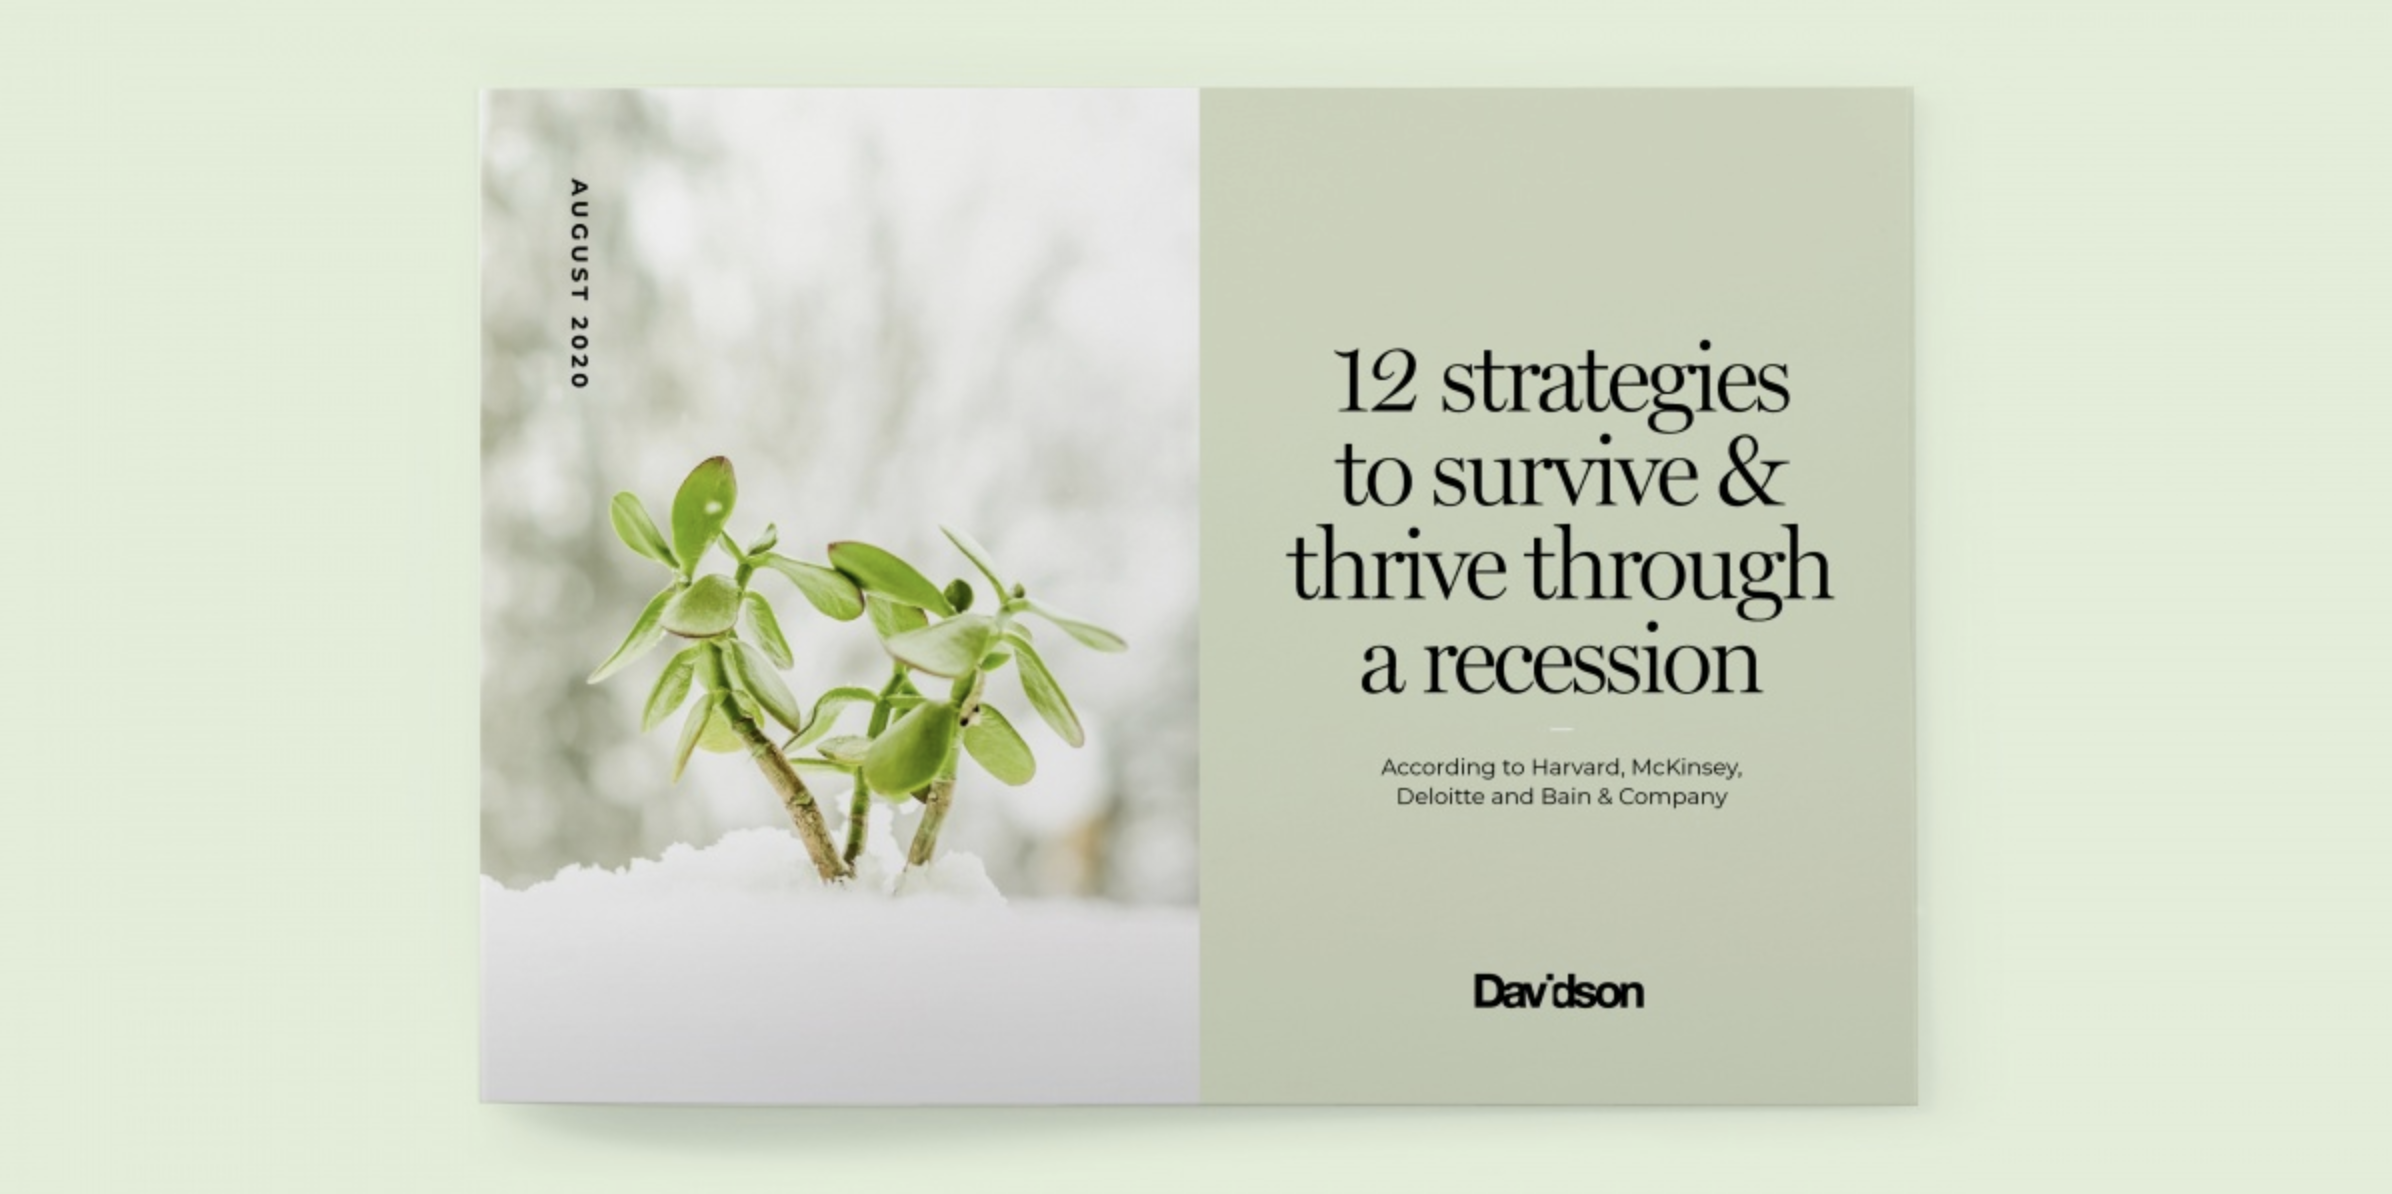 12 Strategies to Survive & Thrive a Recession